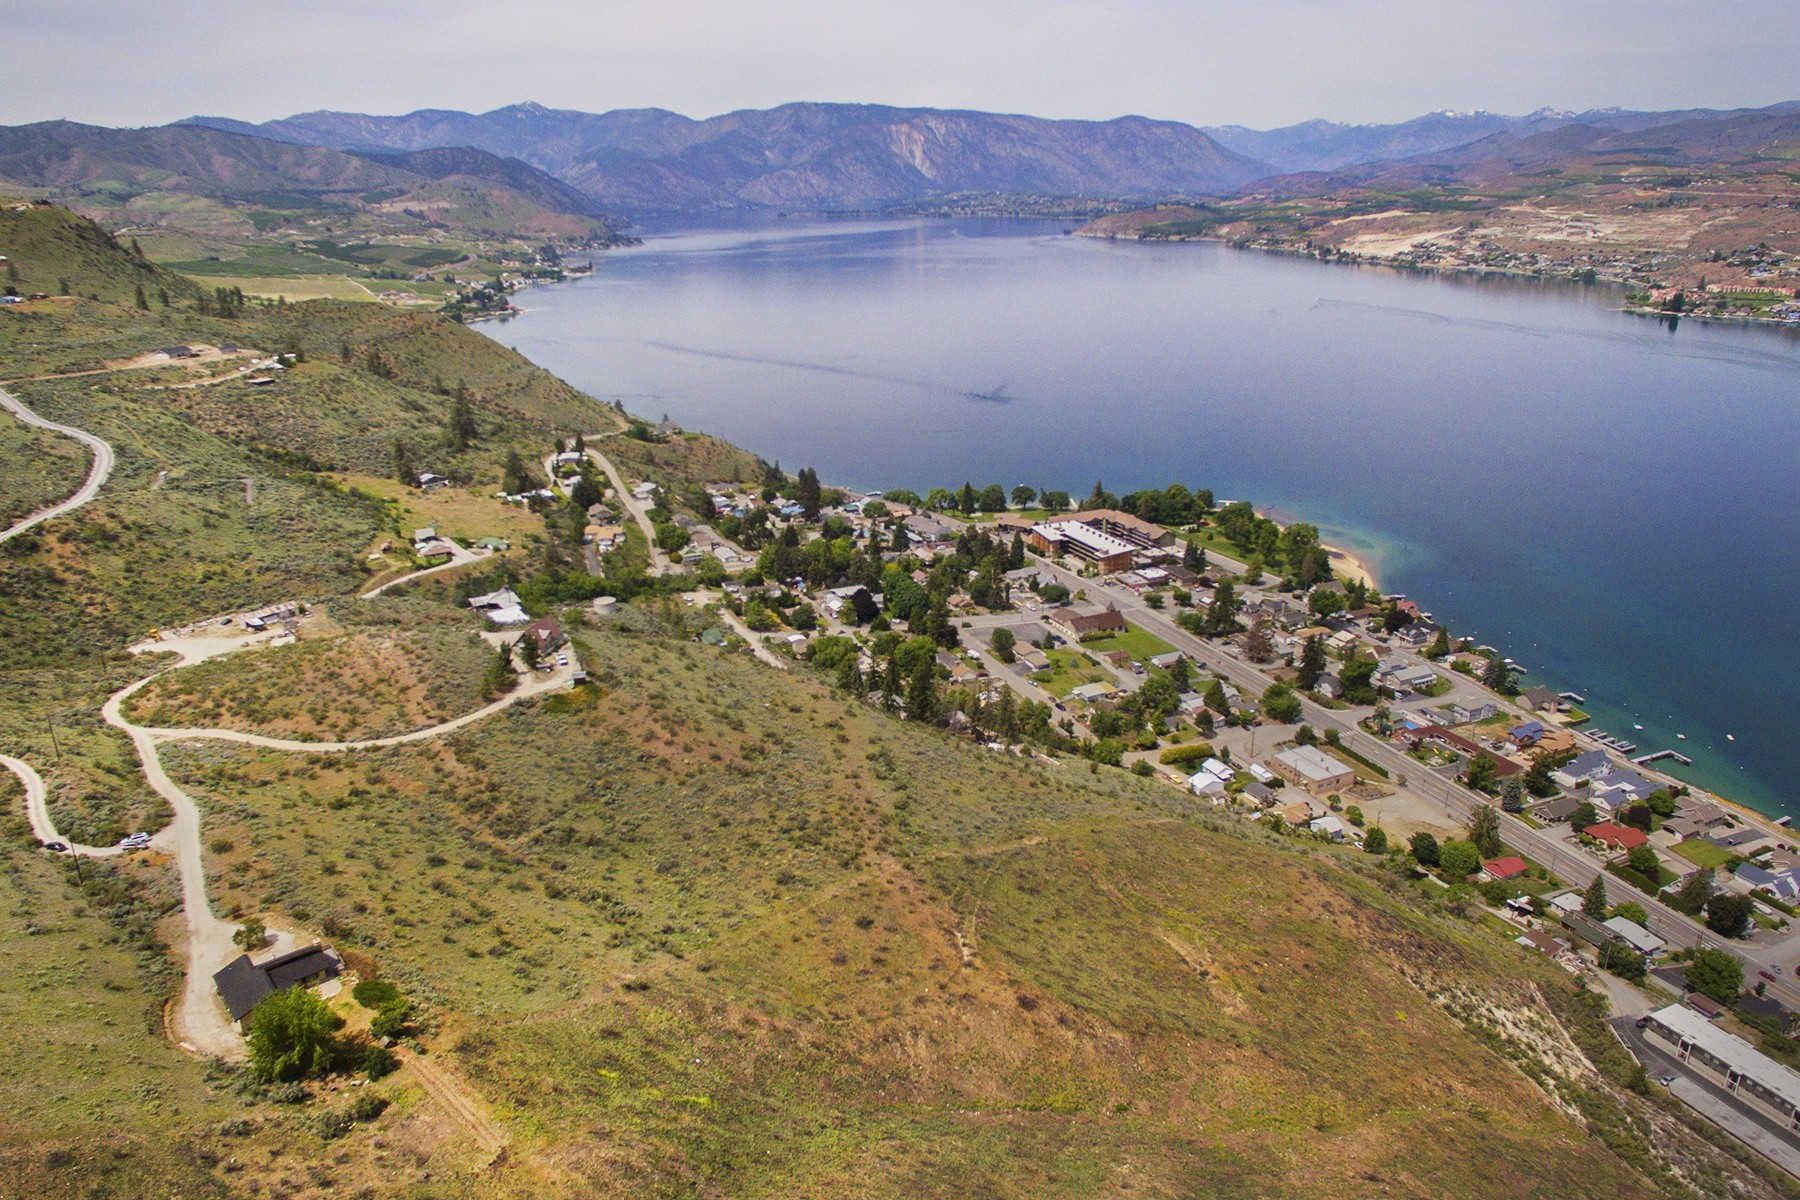 Single Family Home for Sale at The Butte at Chelan 25 Chelan Butte Rd Chelan, Washington 98816 United States